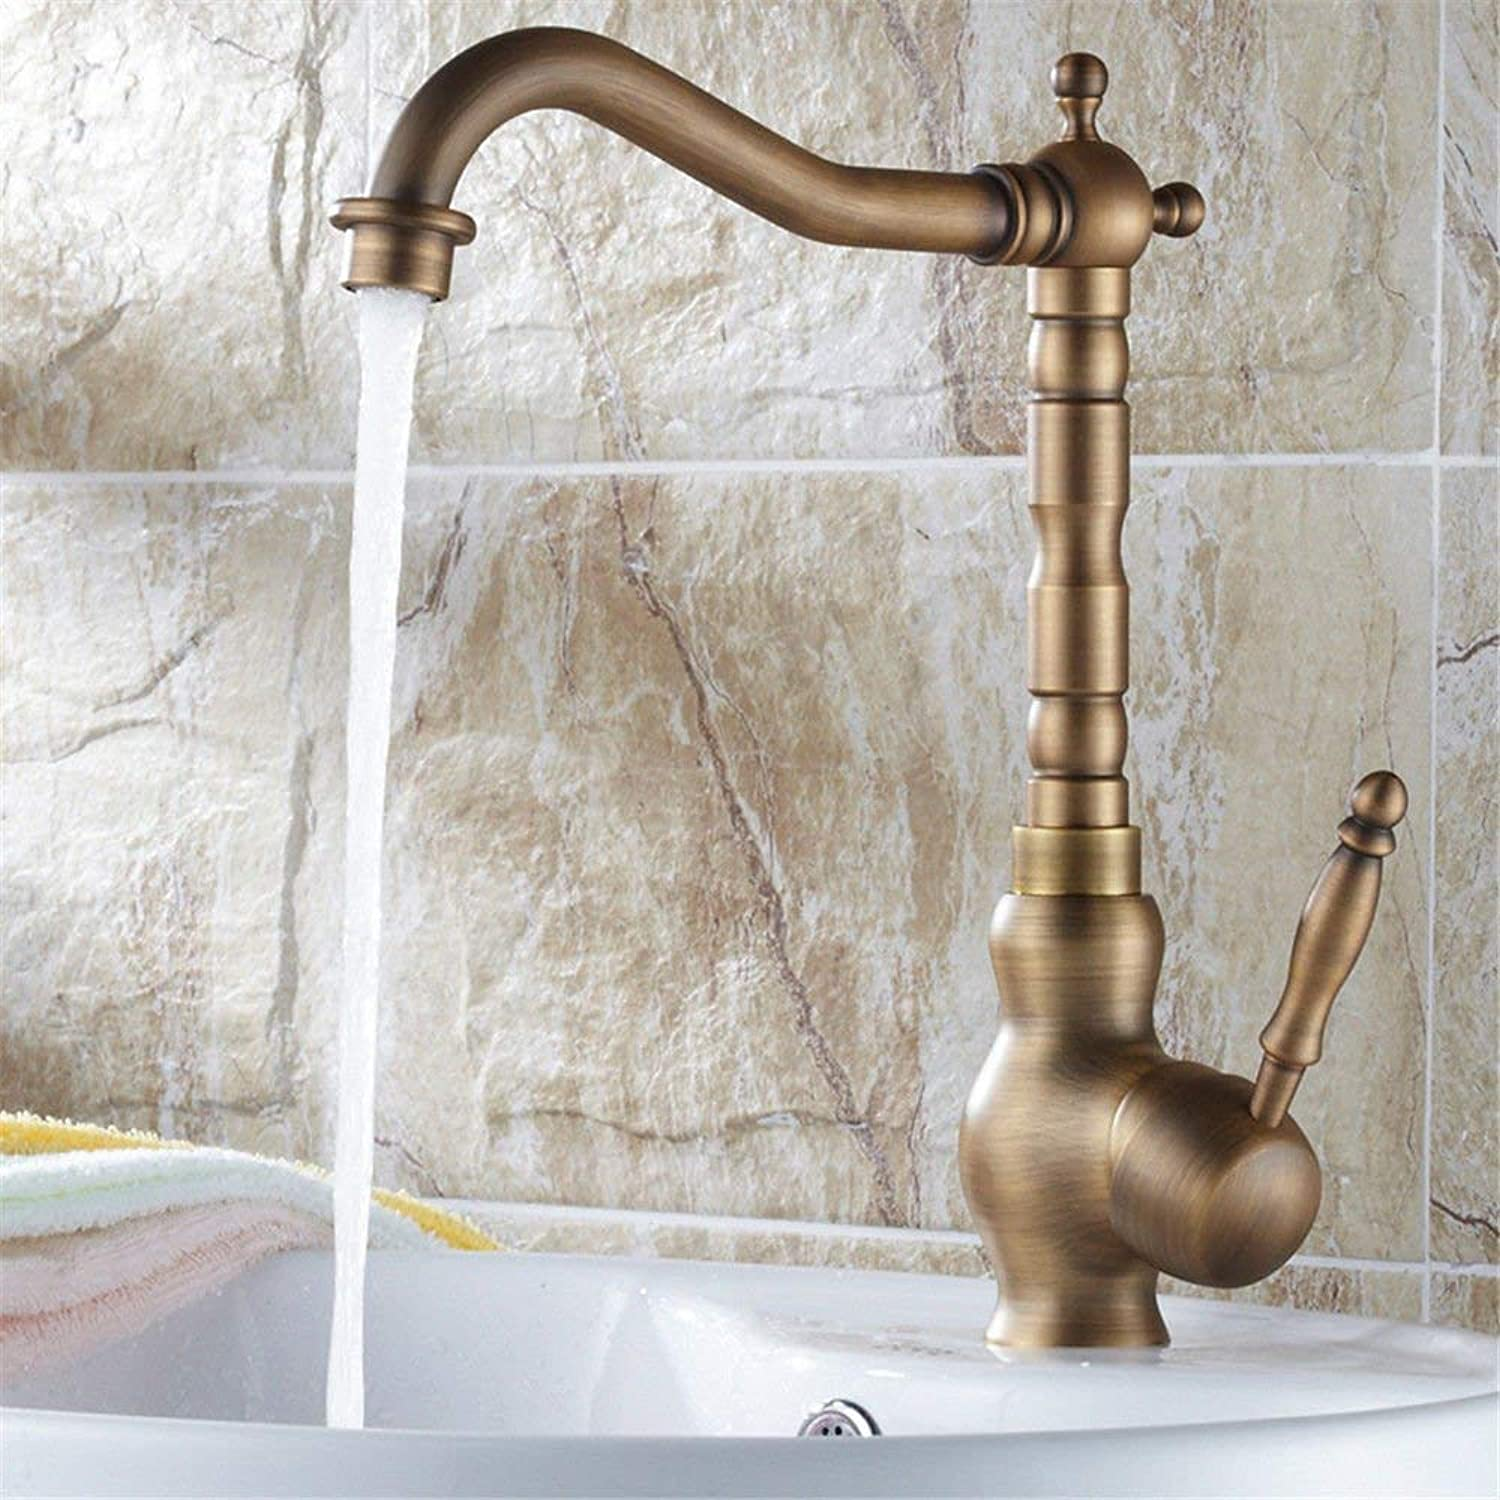 Oudan Kitchen Faucet Sink Mixer taps Kitchen Sink tap Solid Brass Sink Mixer hot and Cold Basin Mixer tap Swivel spout Sink Faucet (color   -, Size   -)